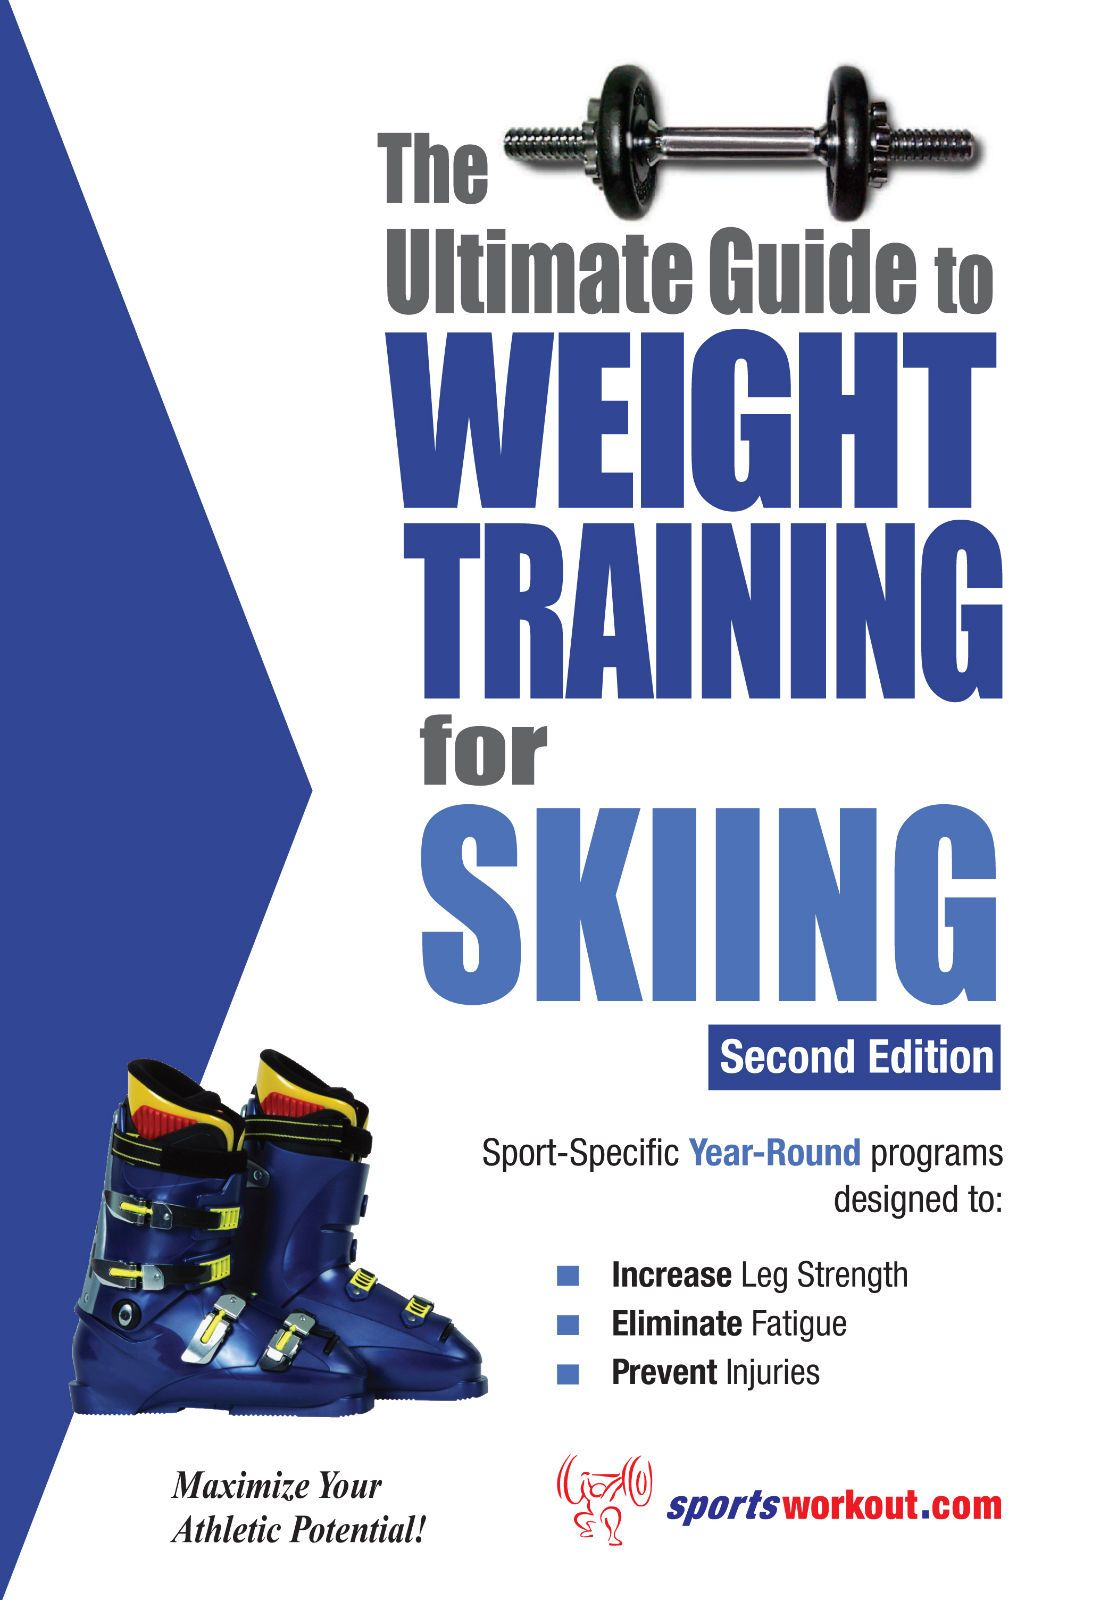 The Ultimate Guide to Weight Training for Skiing By: Rob Price